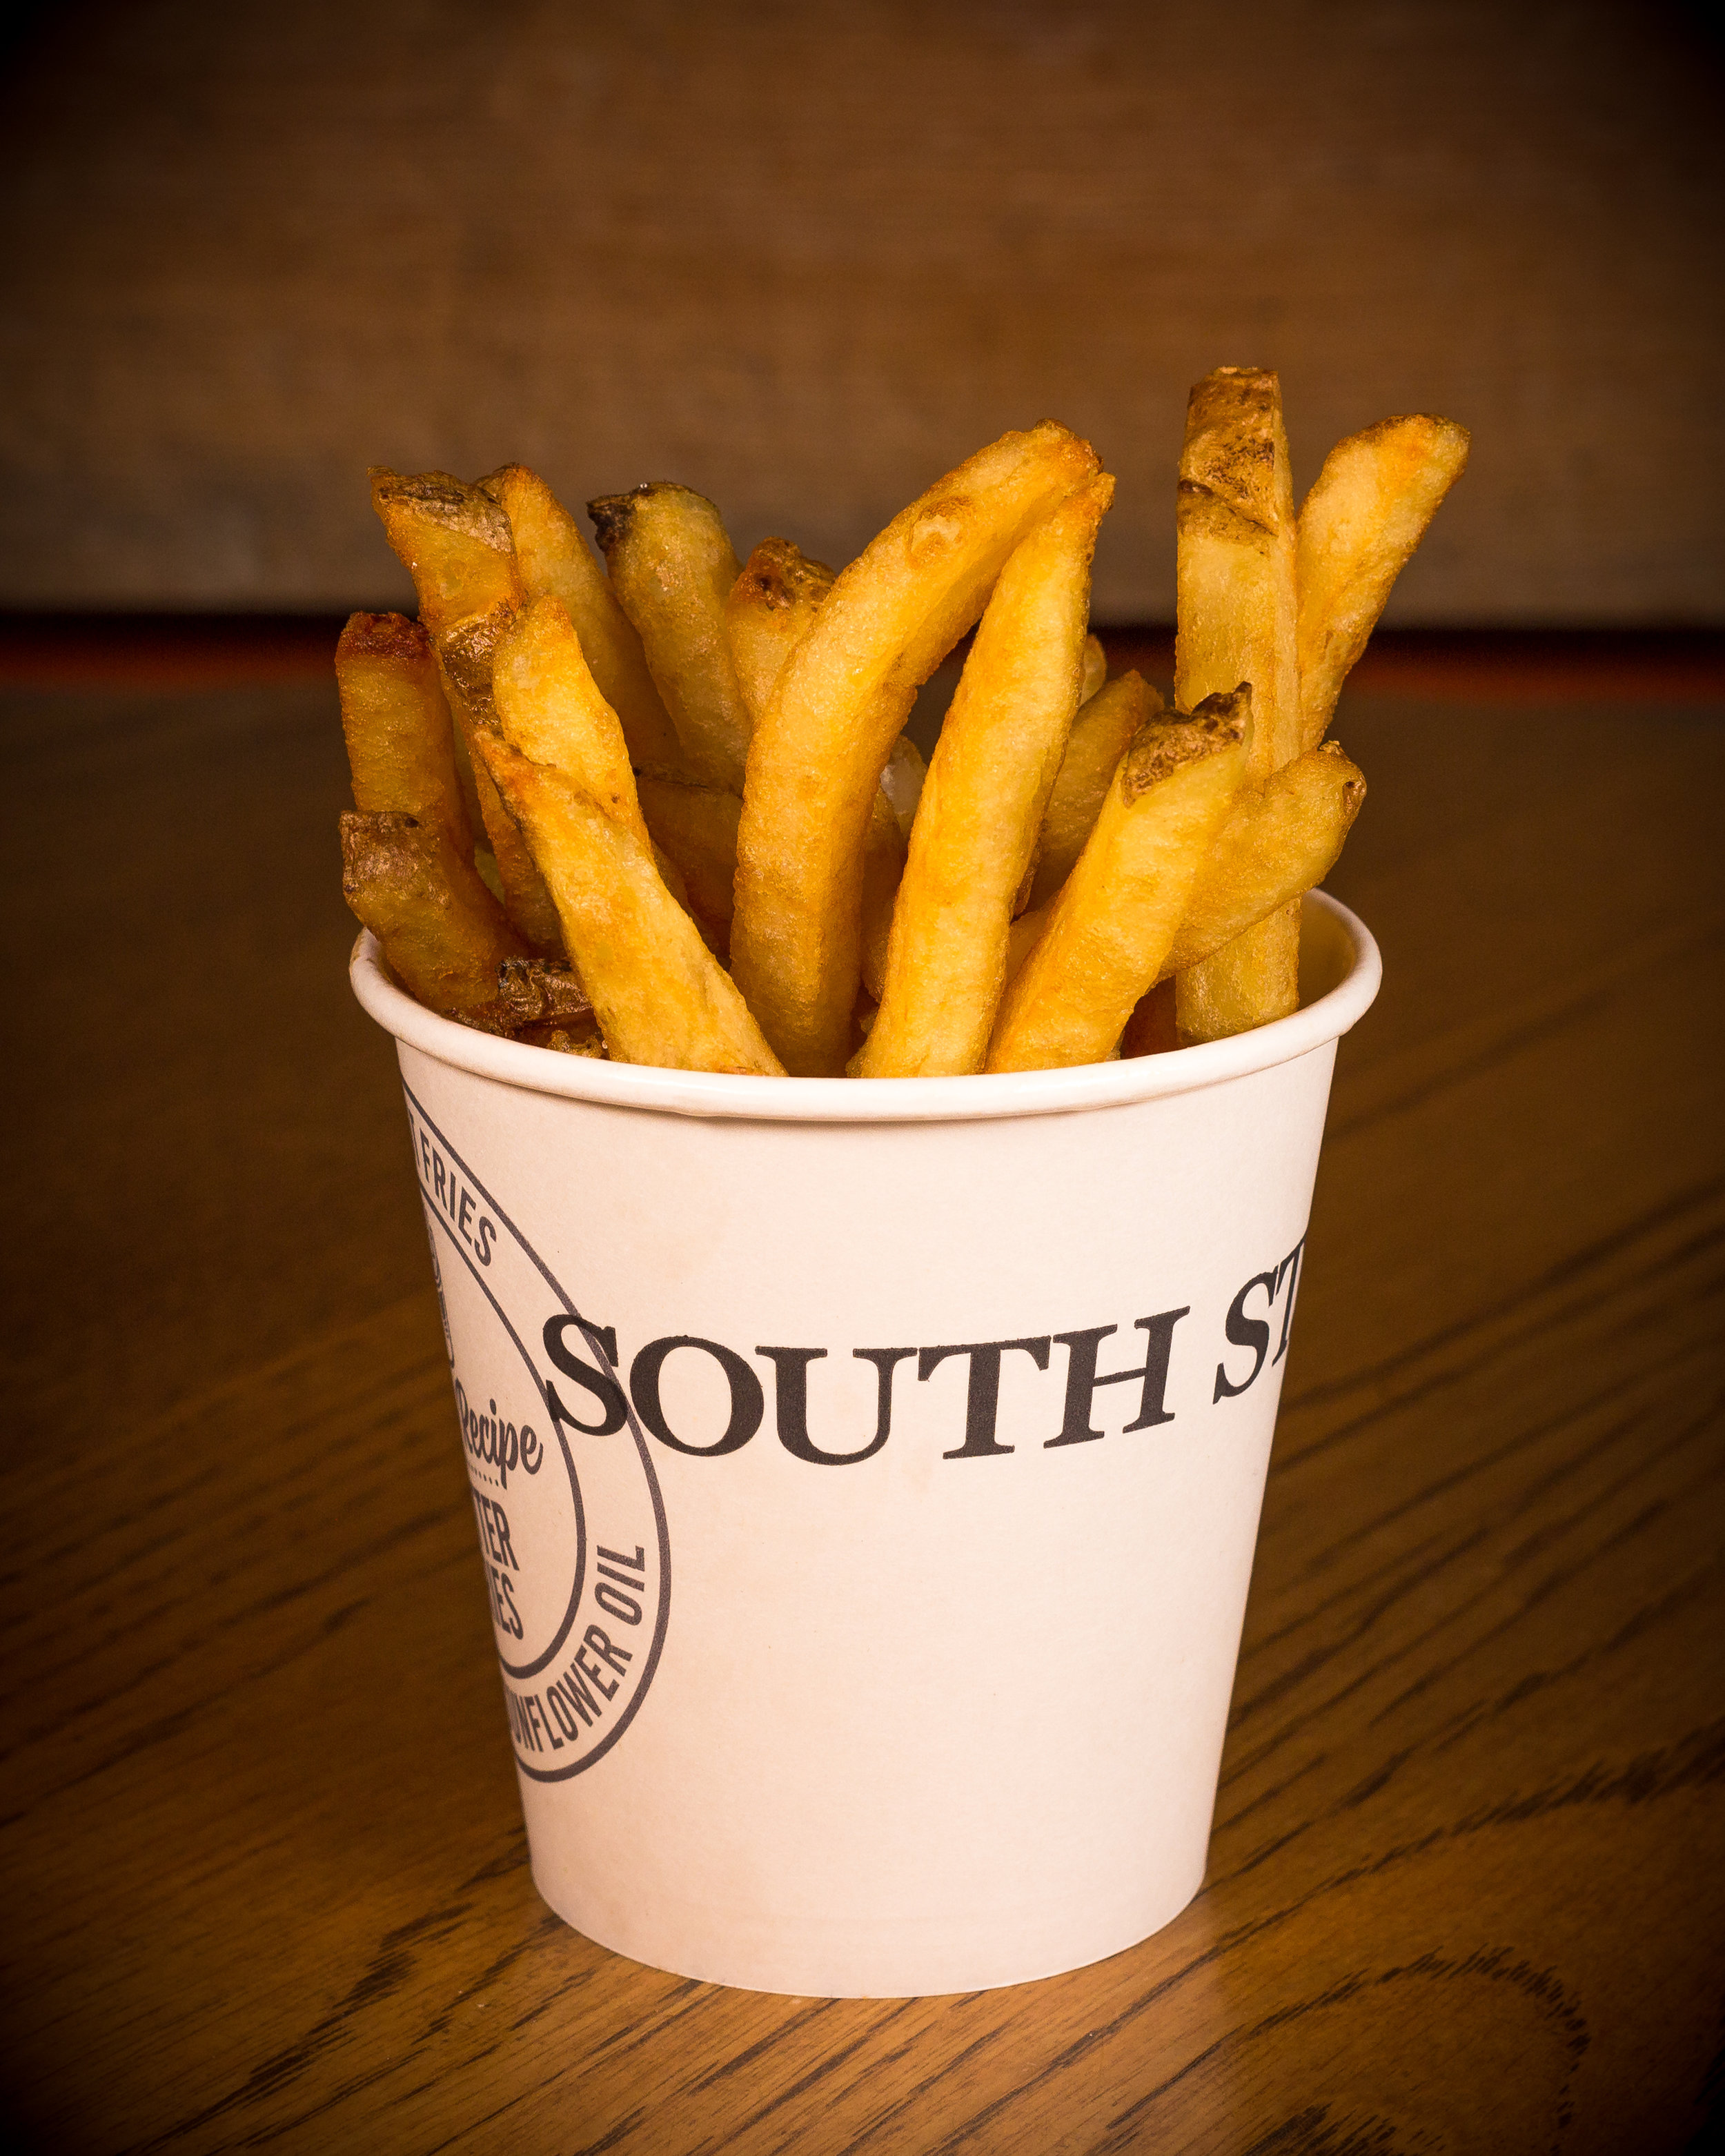 Fries_SouthStBurger_01.jpg